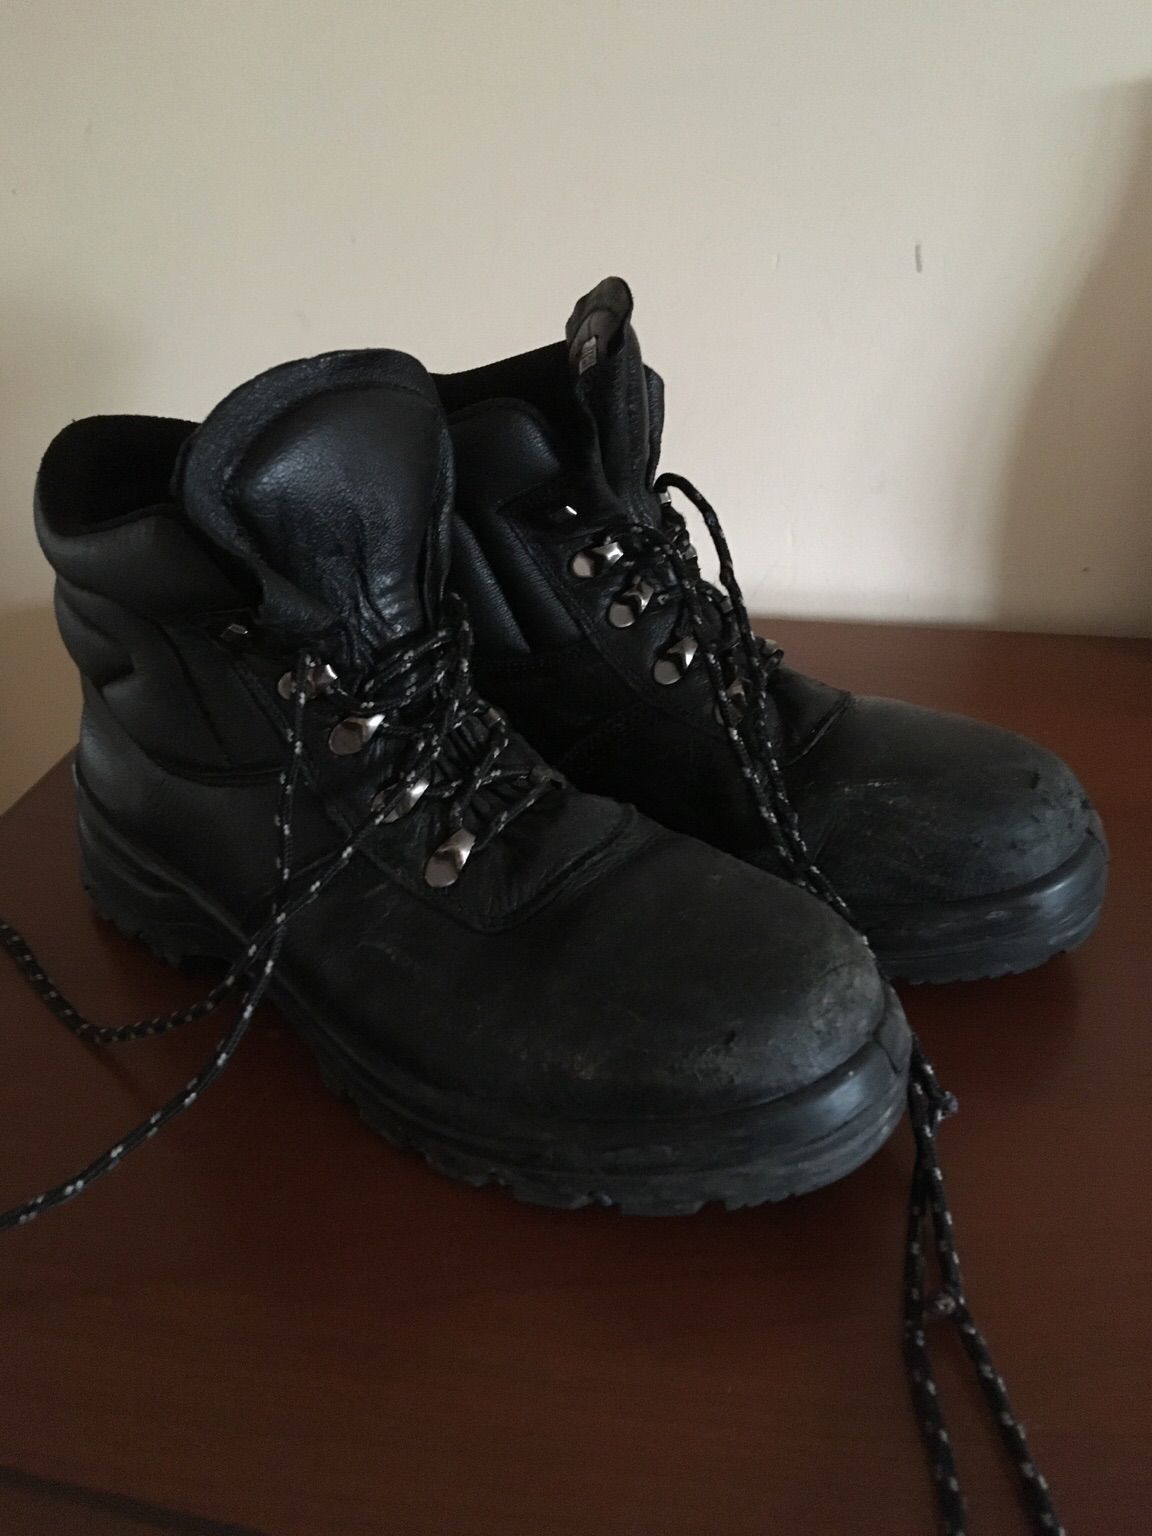 boot vase wholesale of https en shpock com i wiavpjwcnih0ucby 2017 12 11t185525 in size 10 safety boots 519a4194